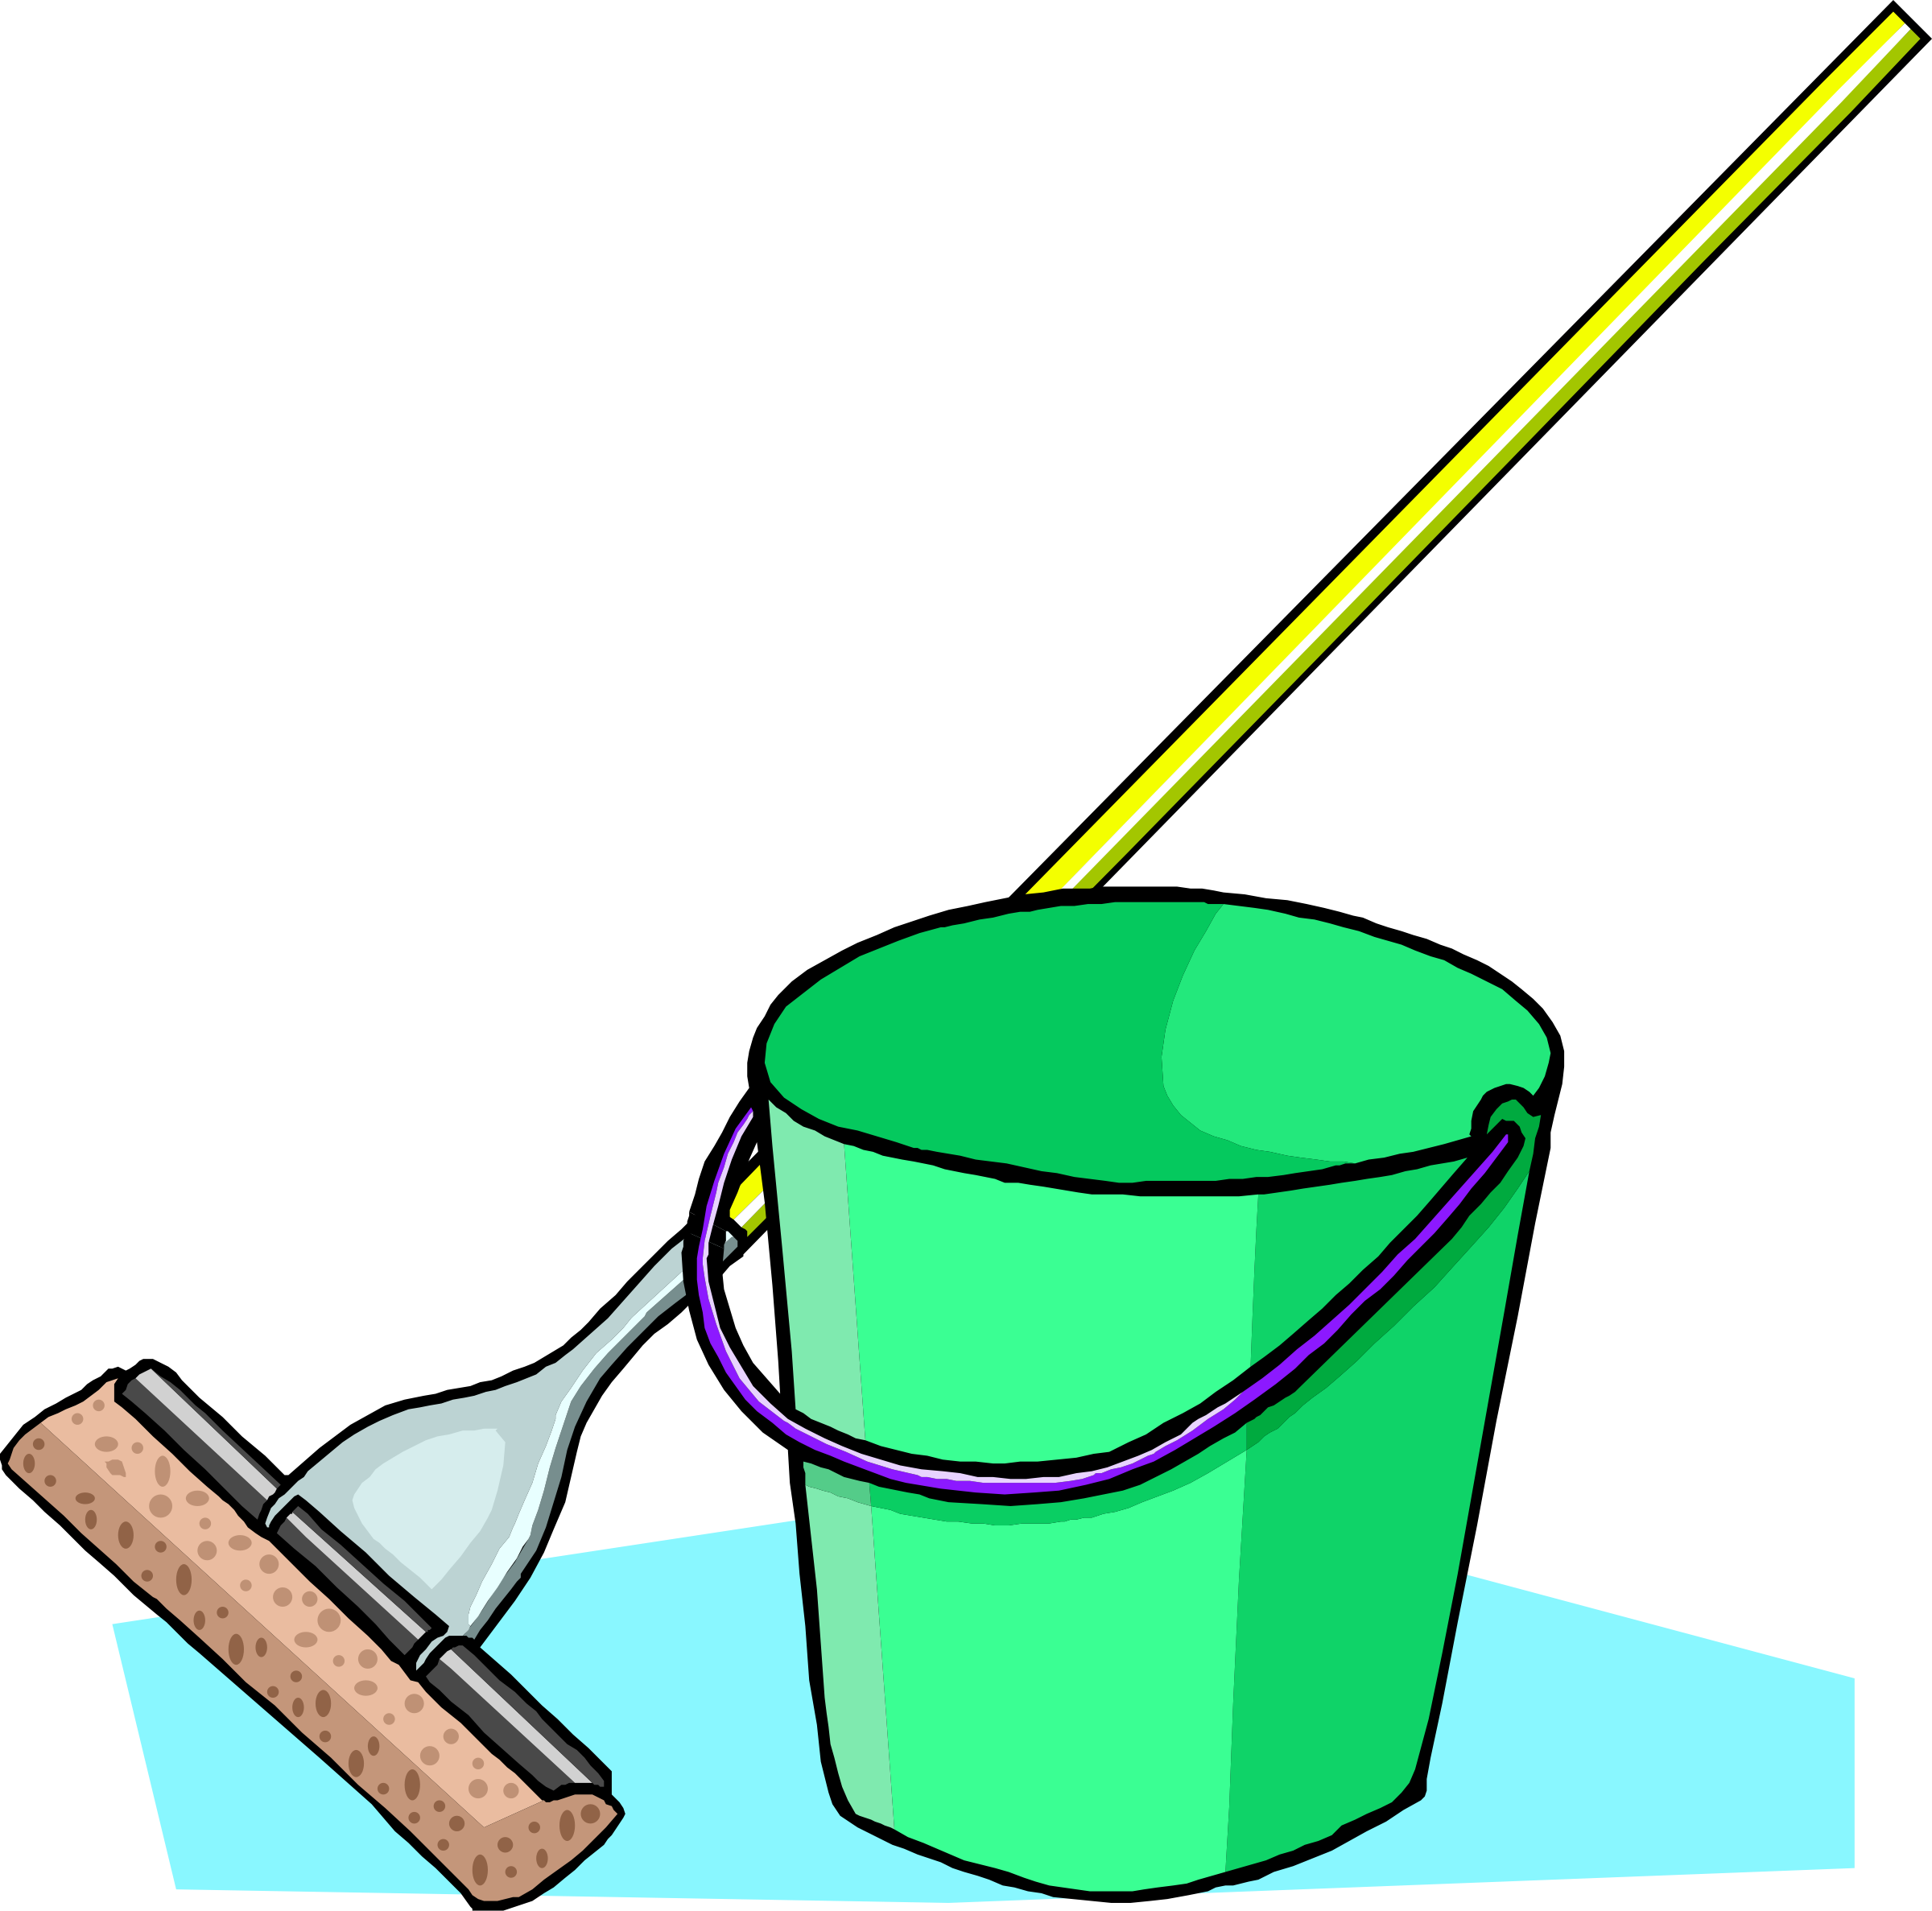 Mop and bucket by liftarn